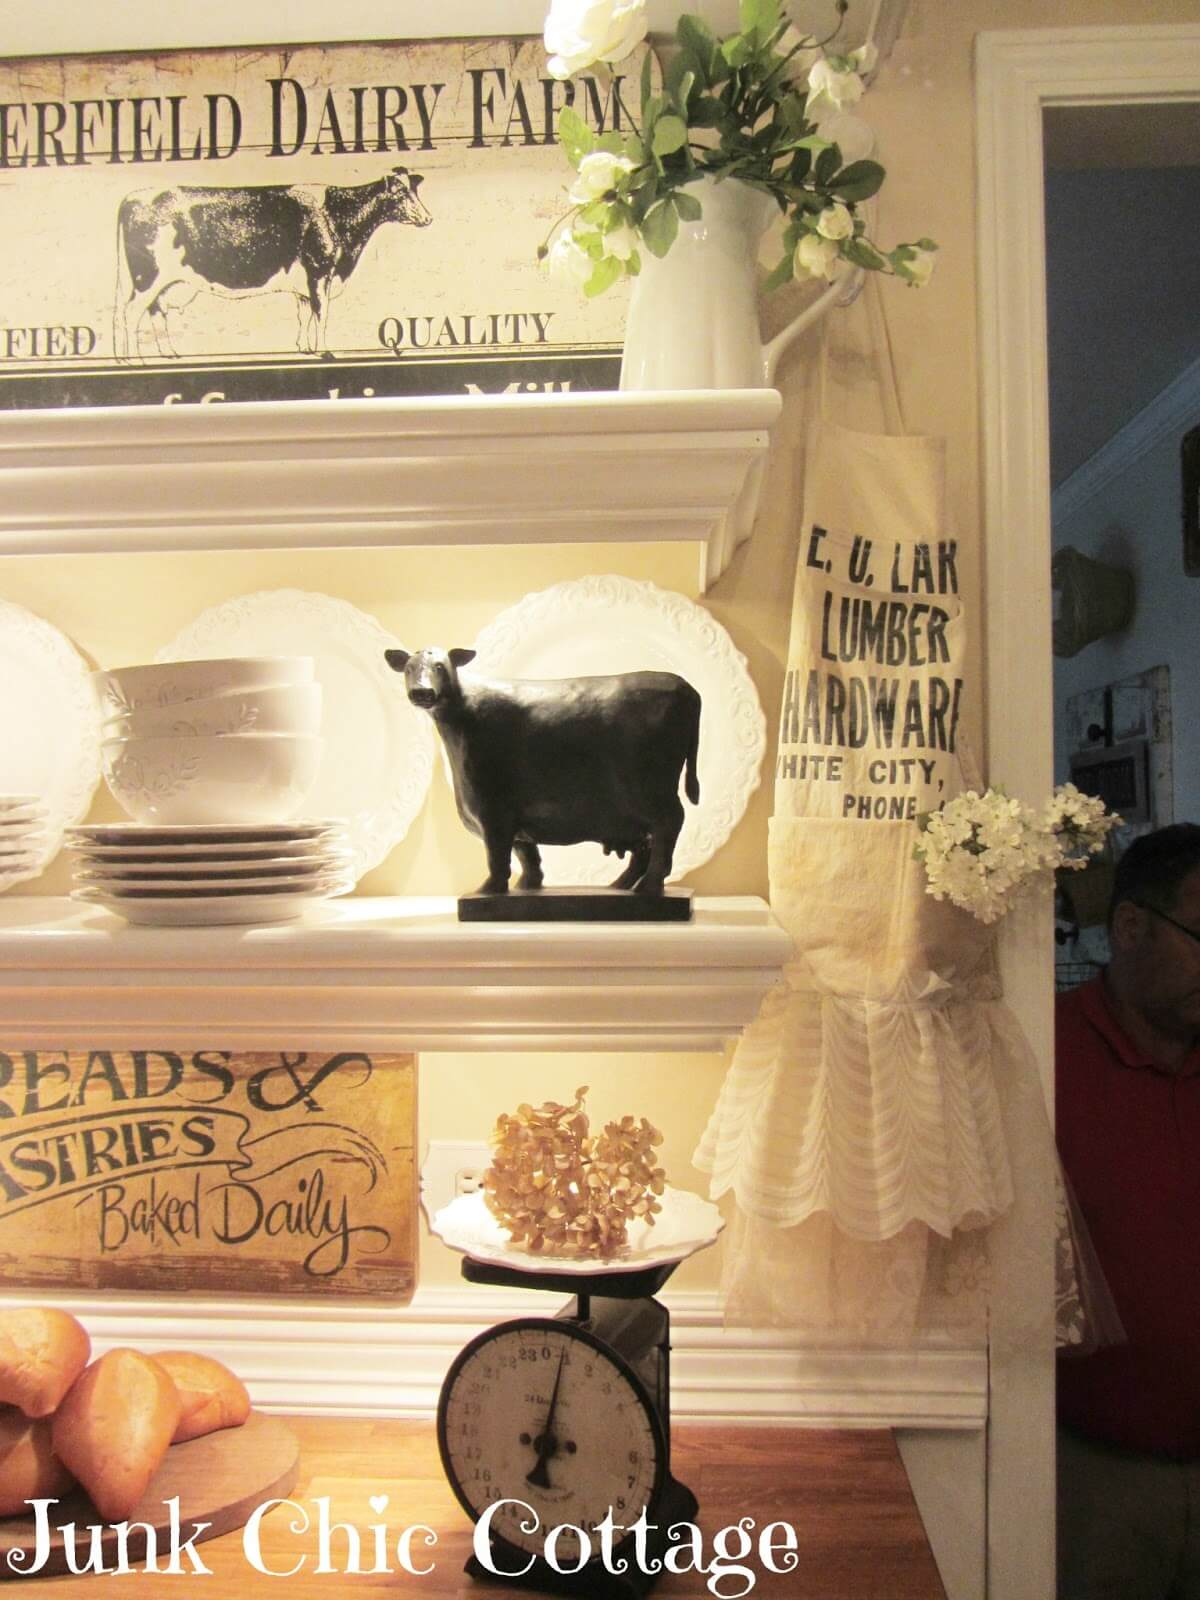 Cute Dairy Themed Corner with an Embellished Apron